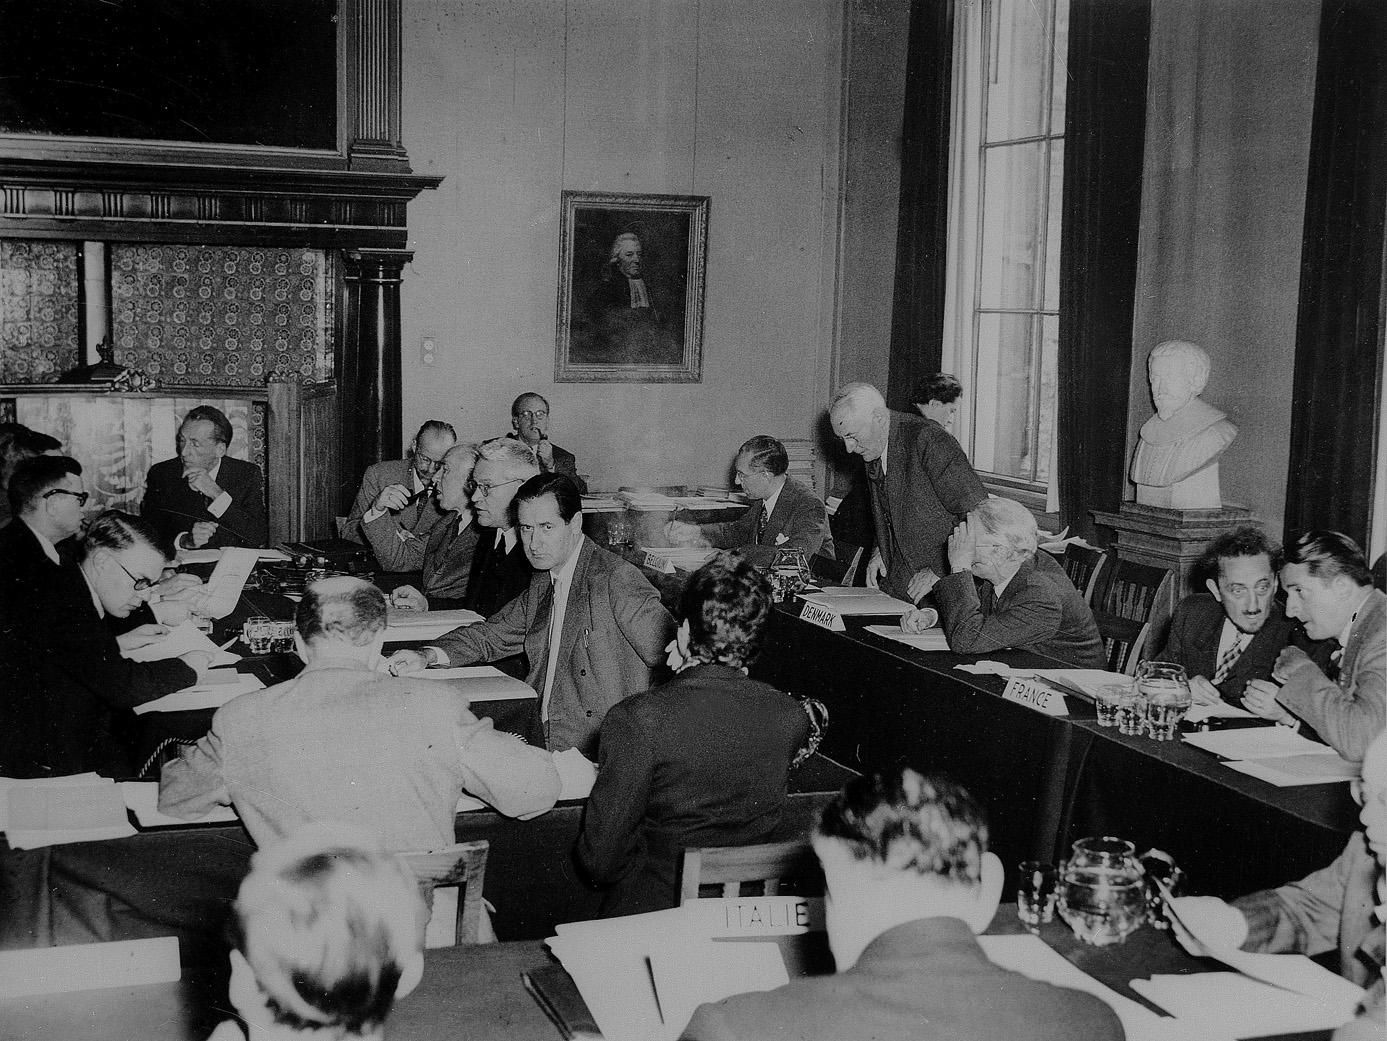 Many of CERN's founders gathered for the Third Session of the provisional CERN Council in Amsterdam on 4 October 1952